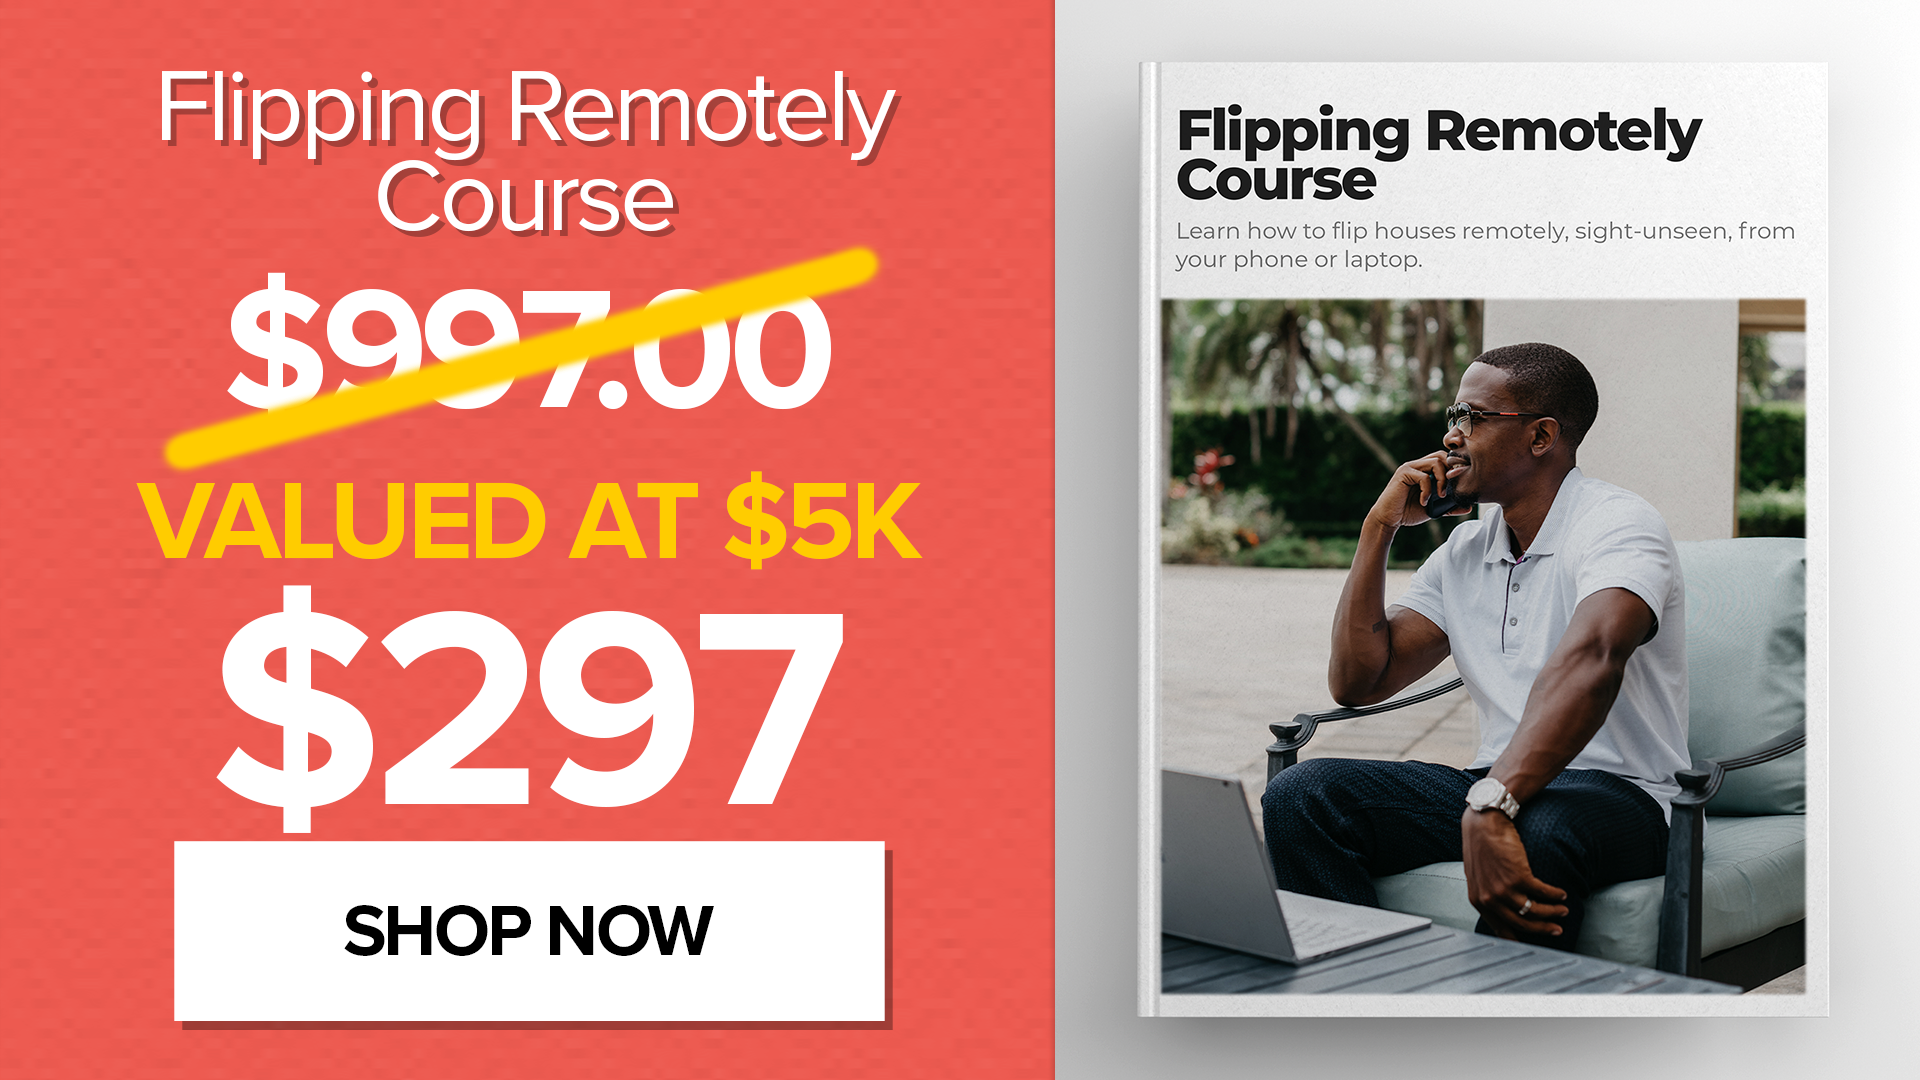 Flipping Remotely Course Normal Price (1)